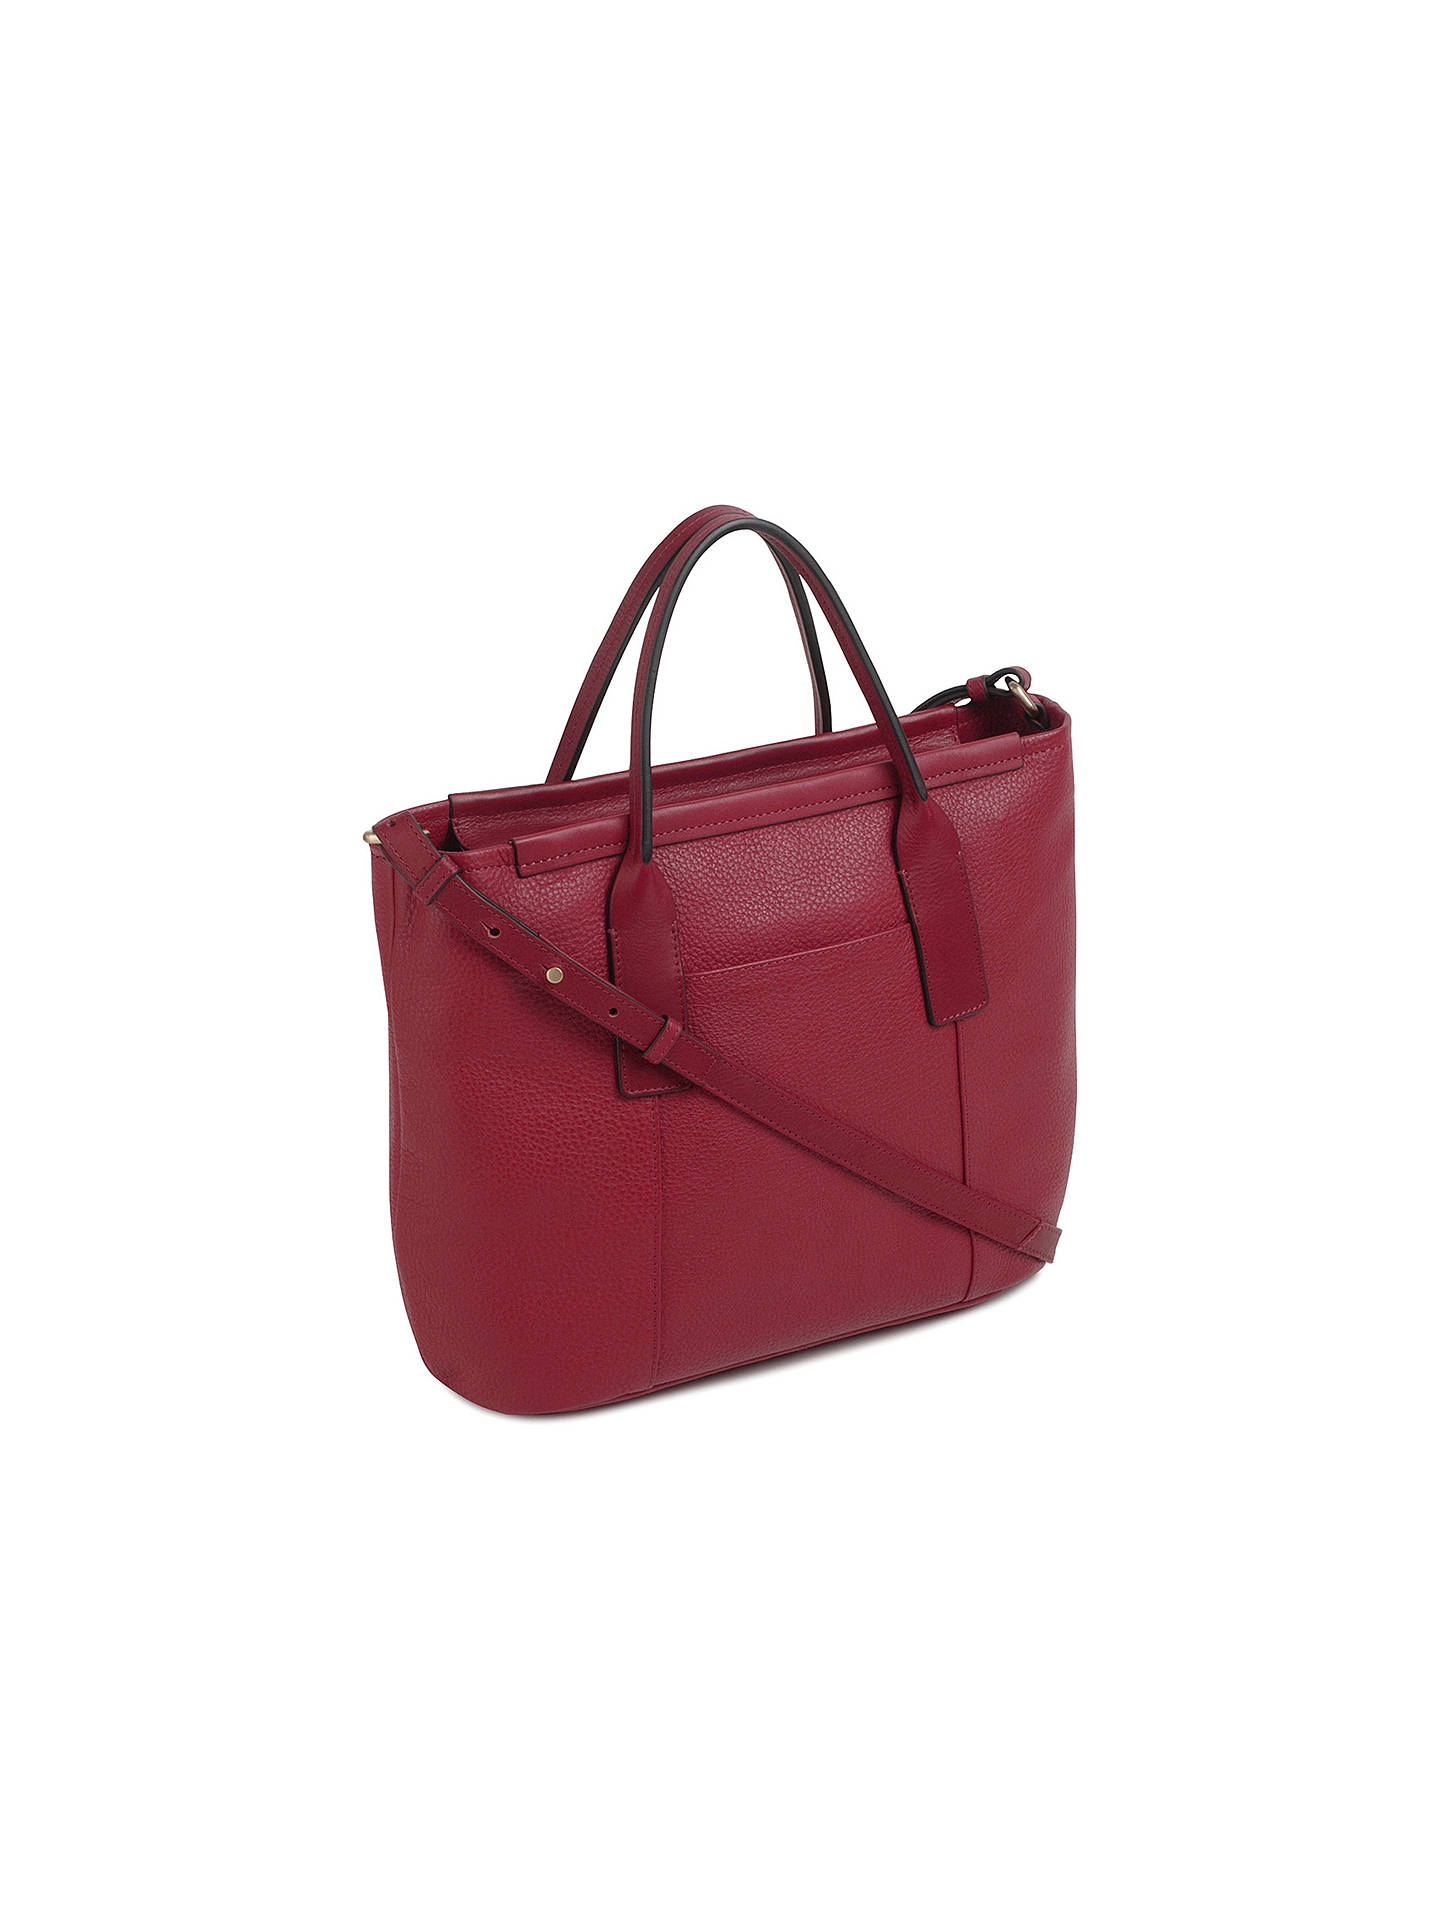 Buy Radley Leather Medium Multiway Grab Bag, Claret Red Online at johnlewis.com